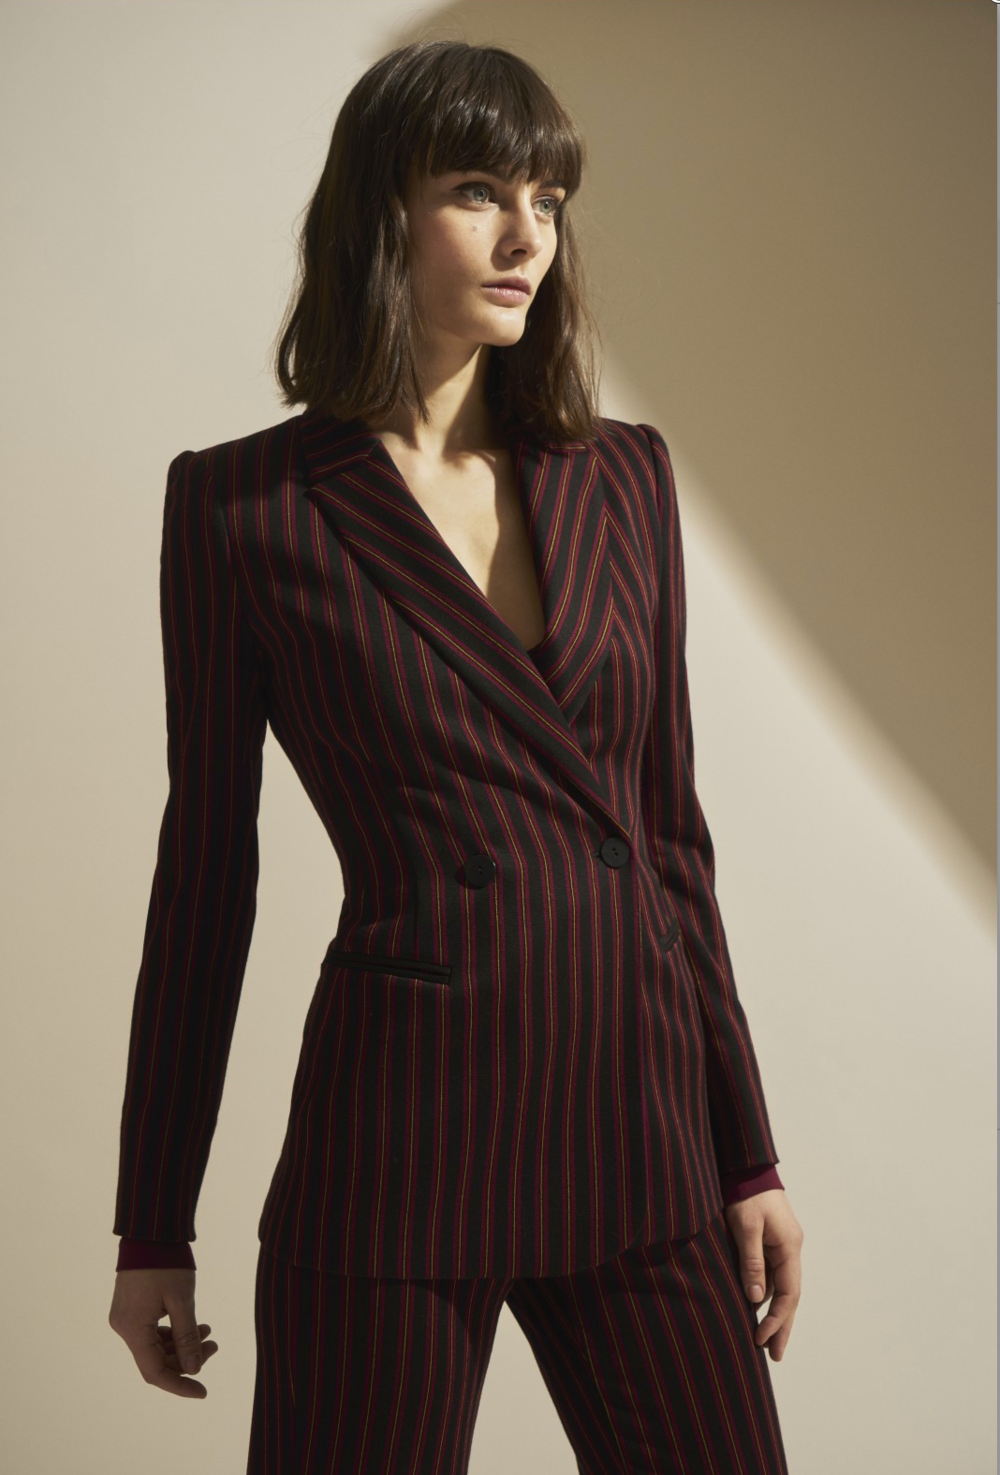 Isabel de Pedro suit in store now.